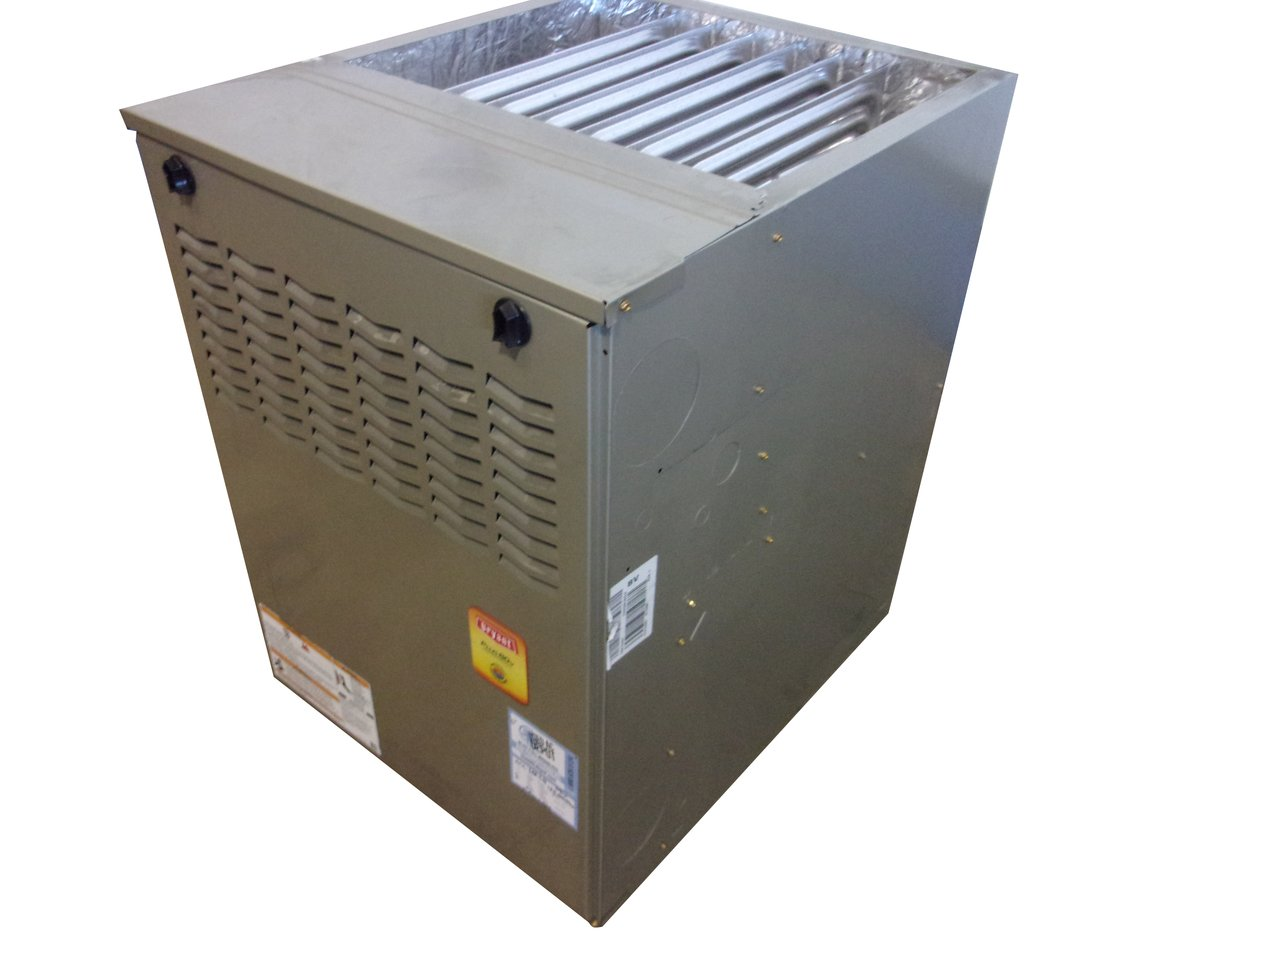 BRYANT ''Scratch & Dent'' Central Air Conditioner Furnace 315AAV066135 ACC-10168